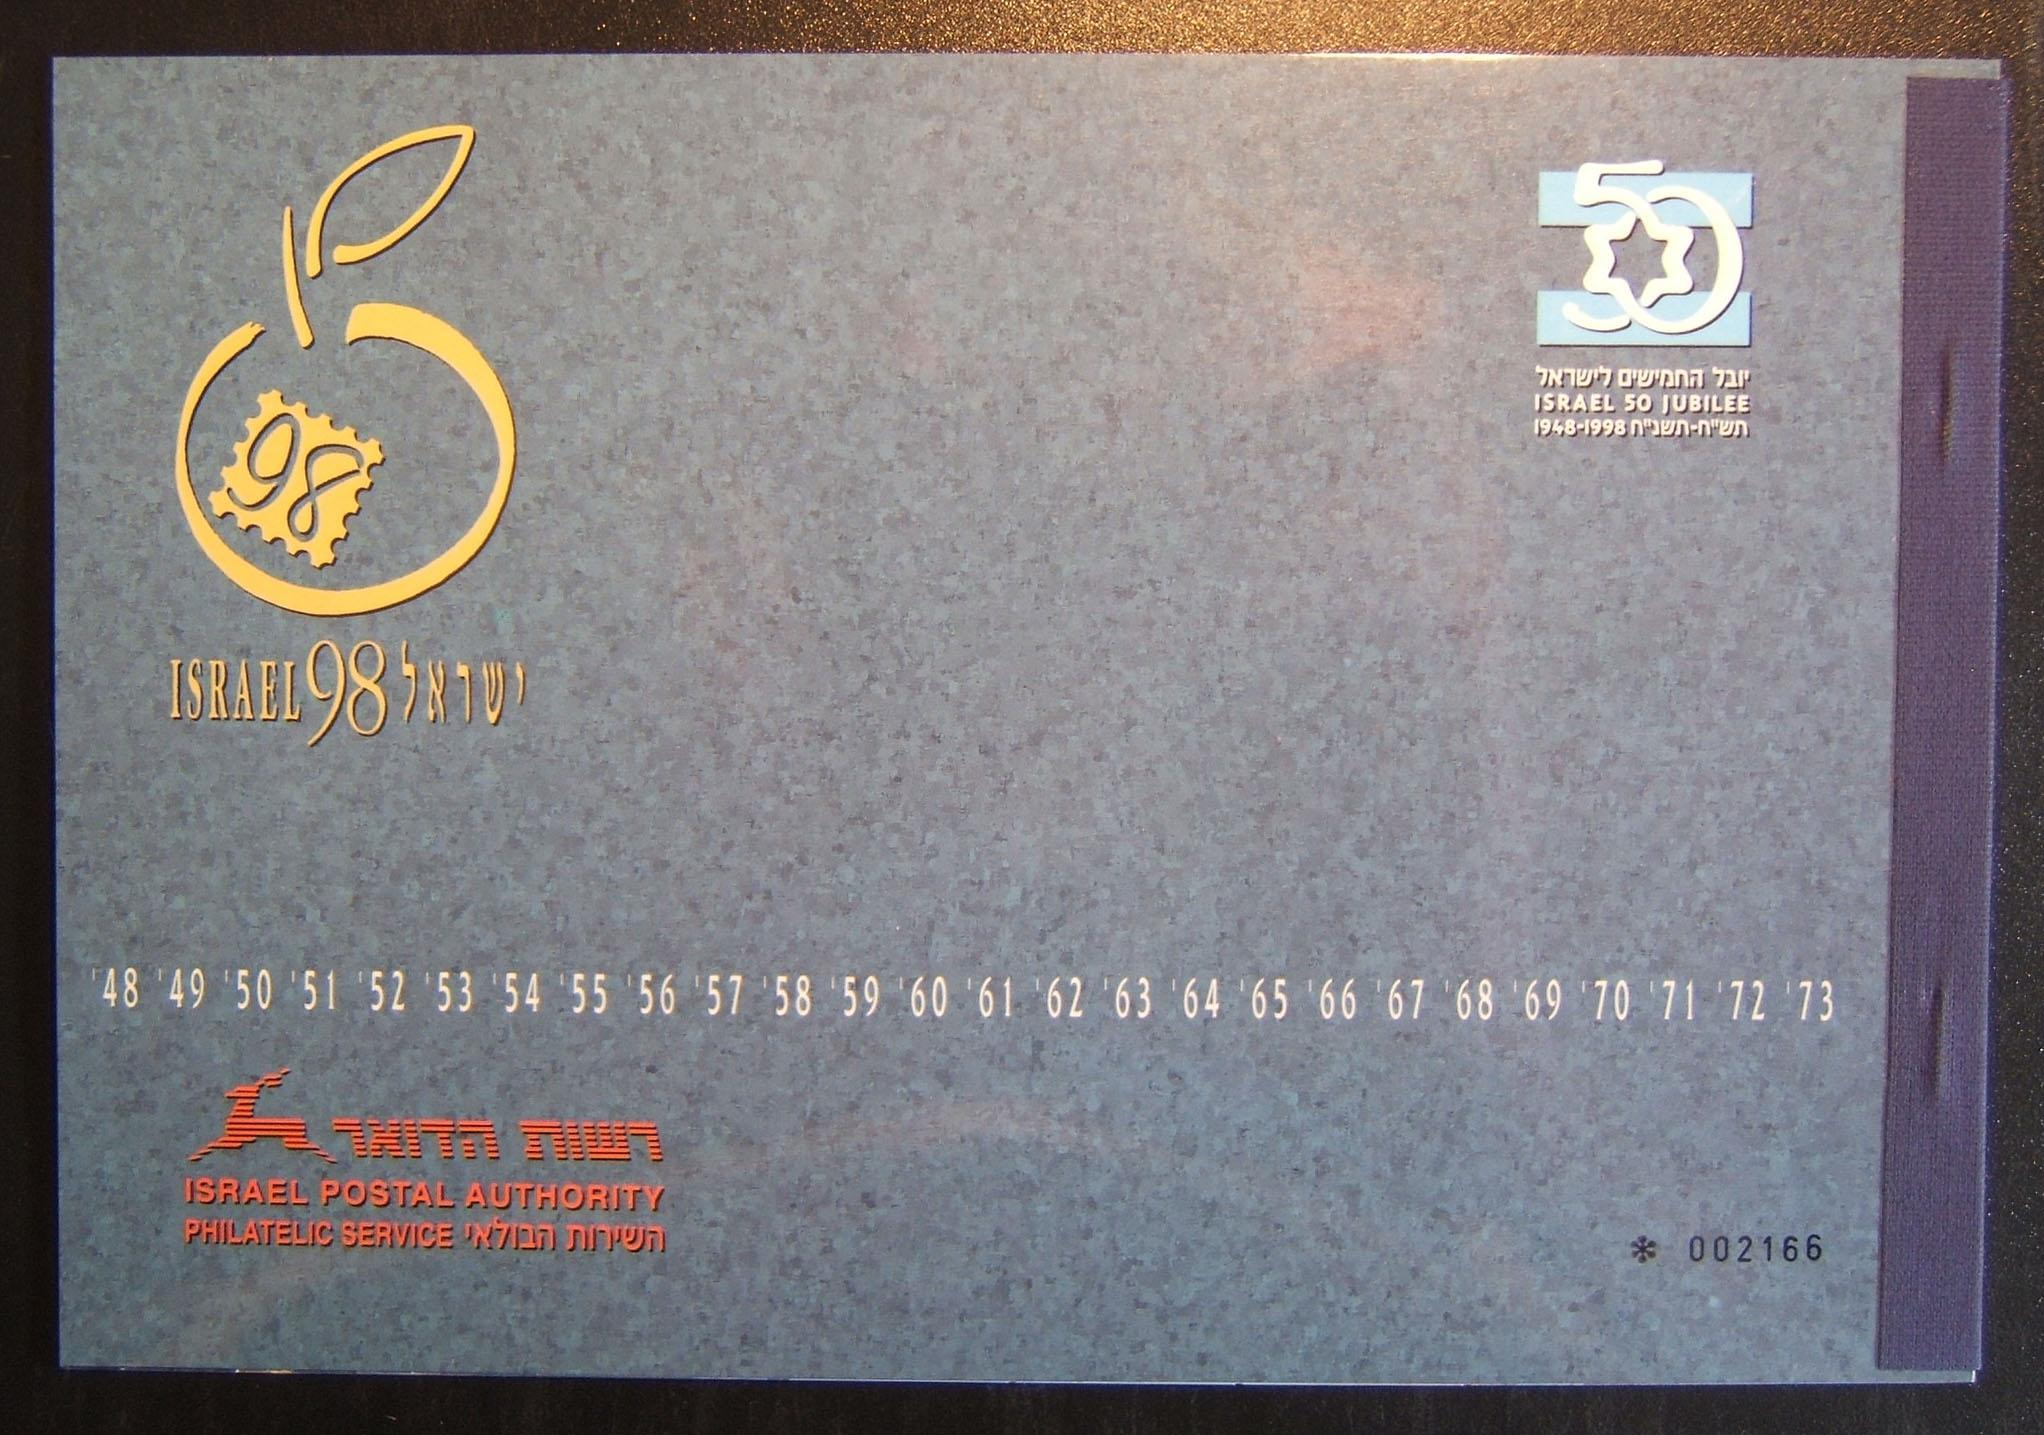 1998 Israeli 50th Independence Anniversary souvenir mini-sheet booklet (Ba PB.1, MS.63x1-8 + TB strip SB.26), numbered 002166. Cat val = $125